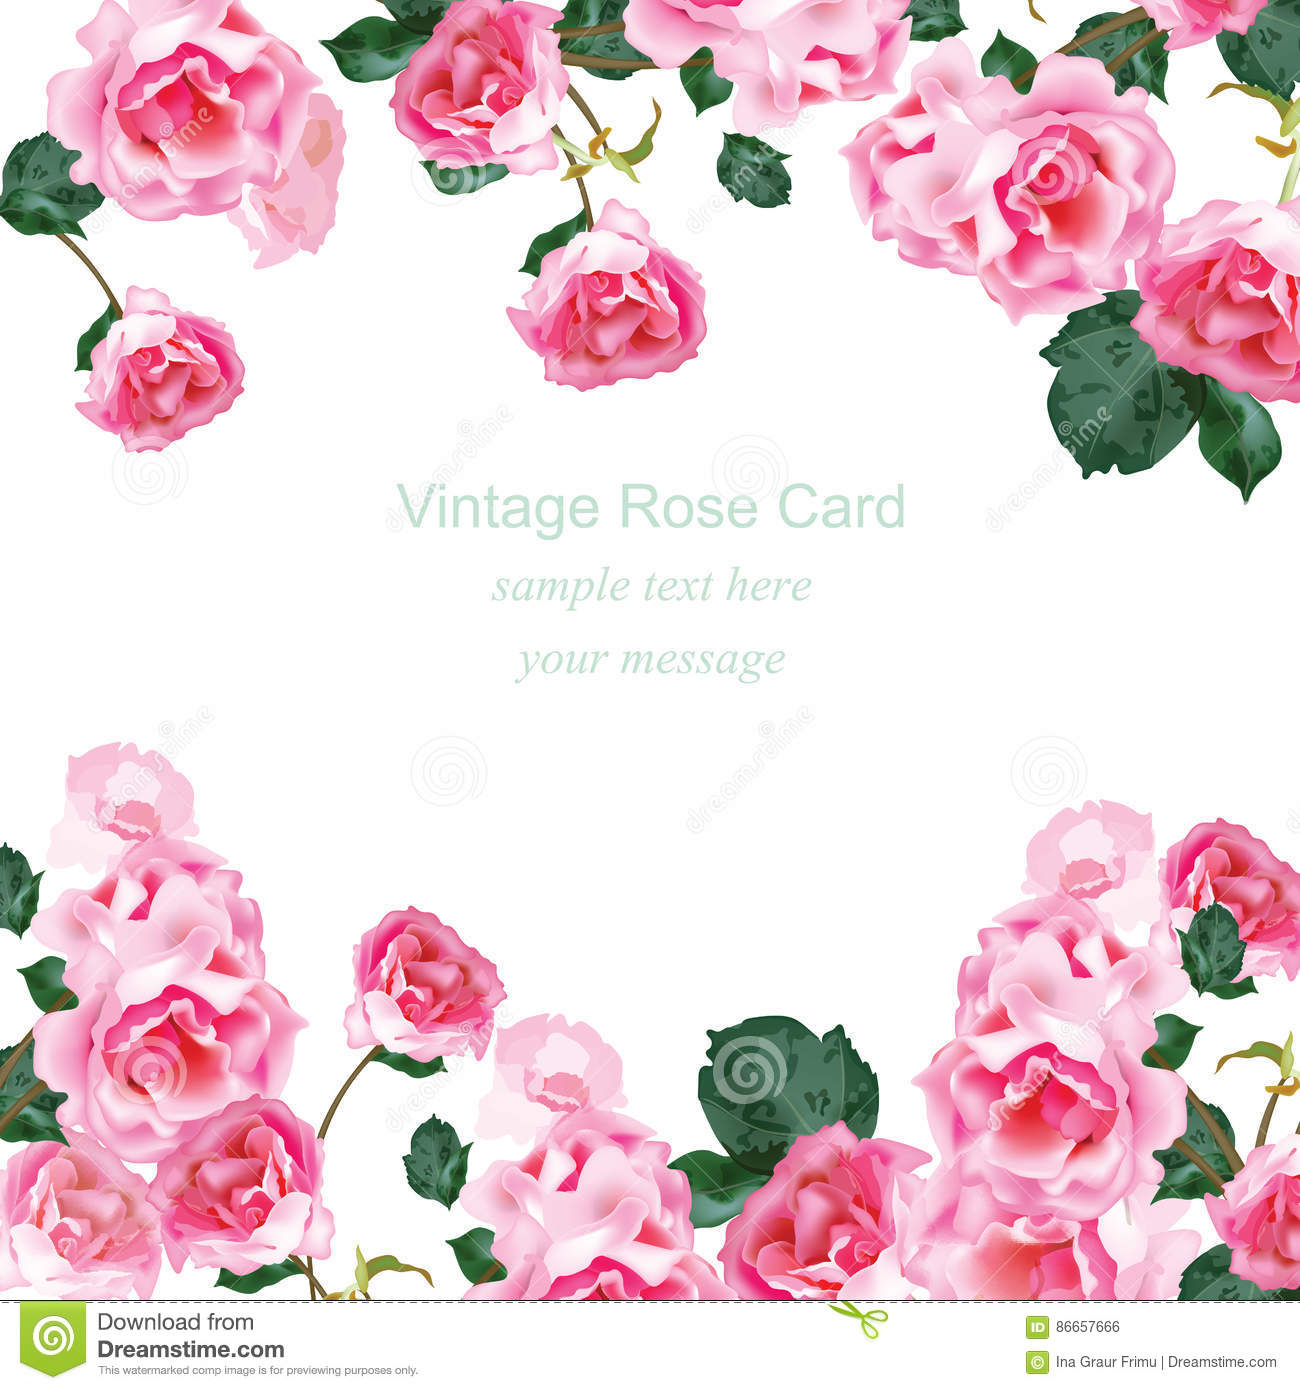 Invitation card with Watercolor Vintage roses bouquet Vector. Floral pink decor for greetings, wedding, birthday and